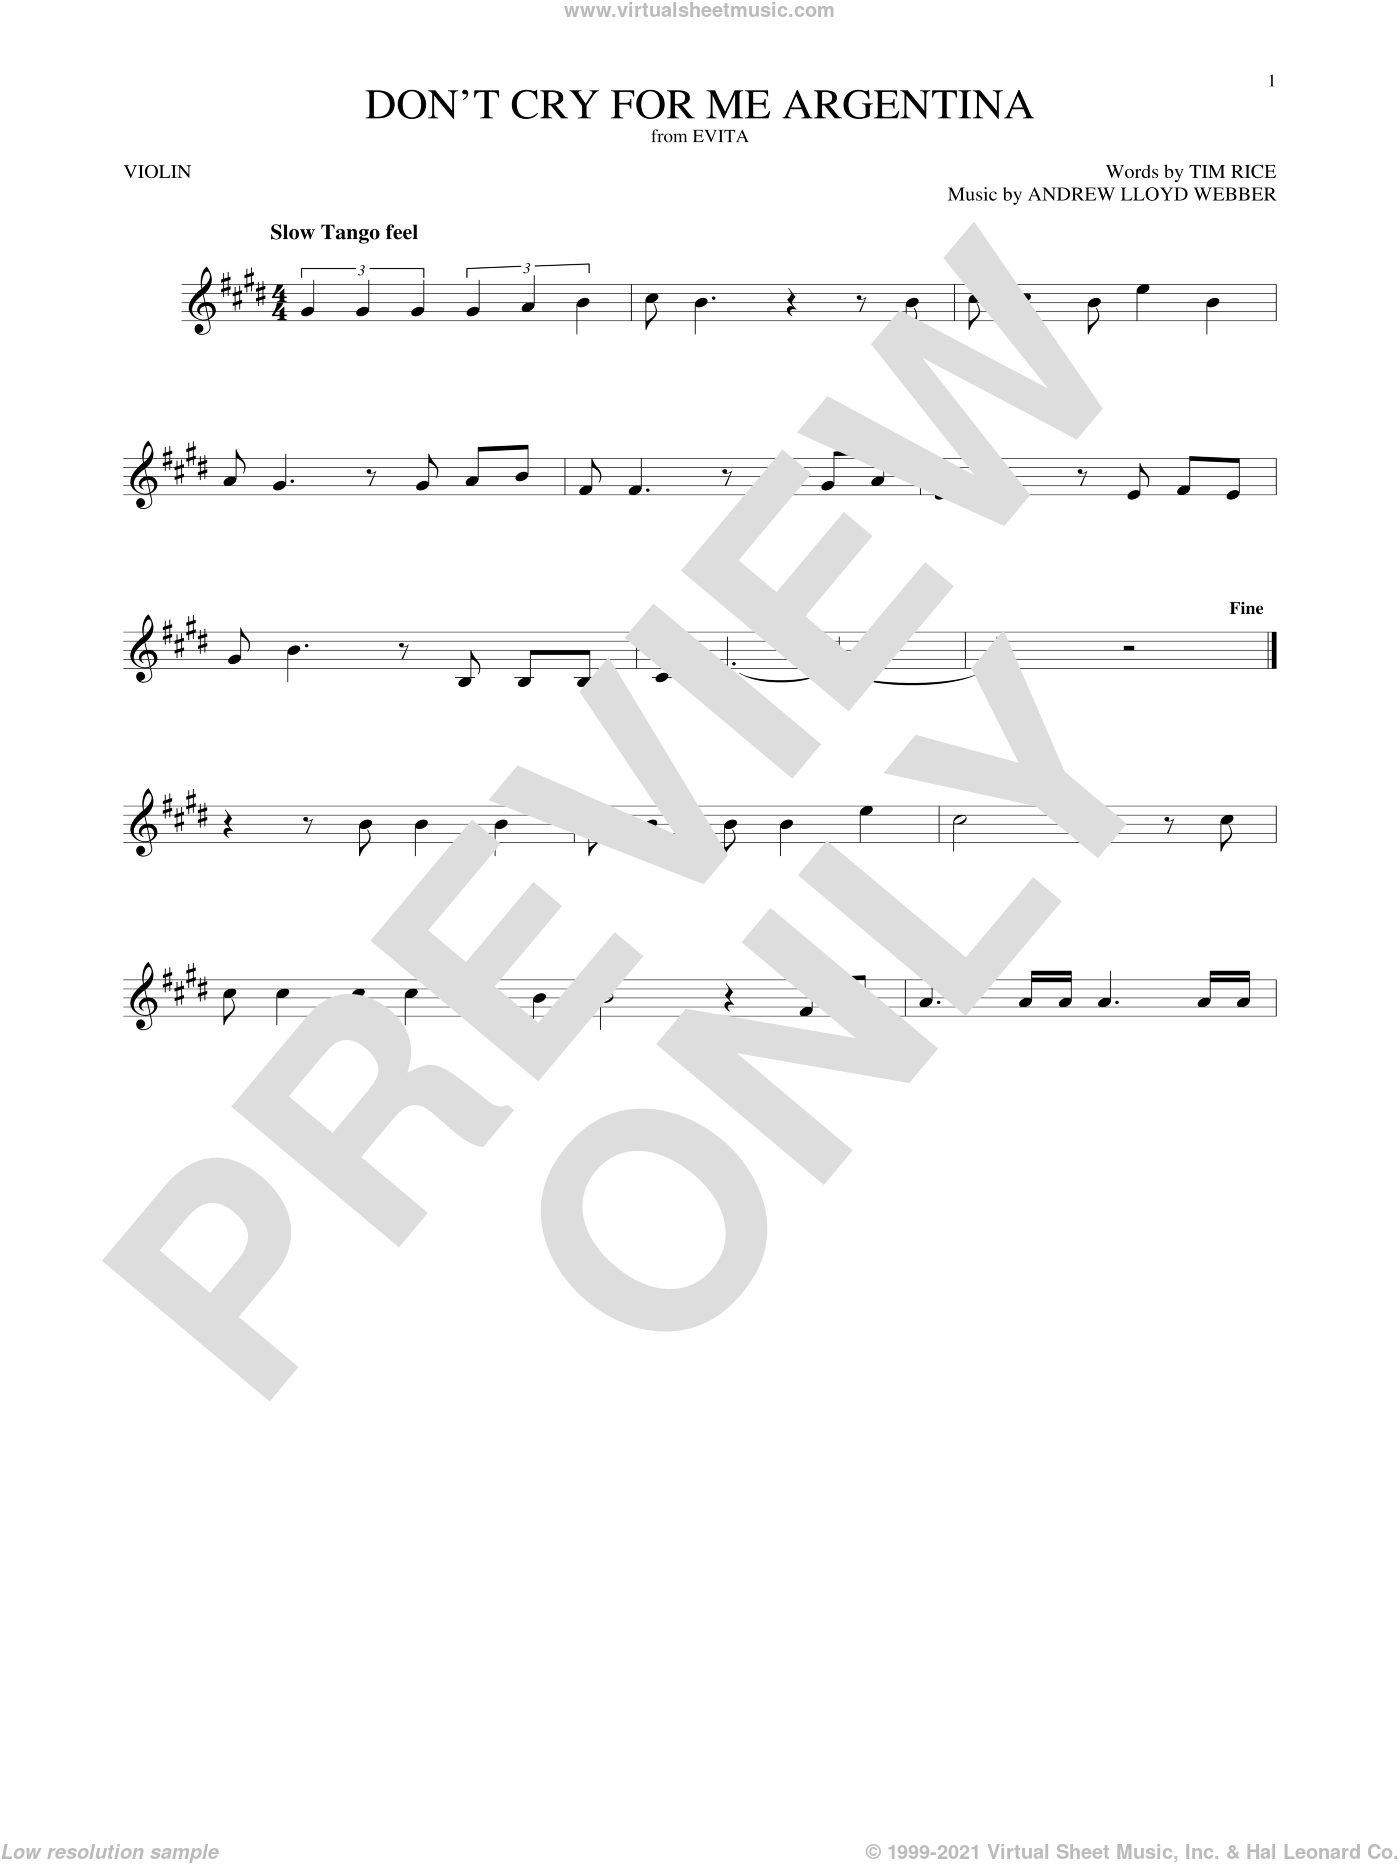 Don't Cry For Me Argentina sheet music for violin solo by Andrew Lloyd Webber, Madonna and Tim Rice, intermediate skill level